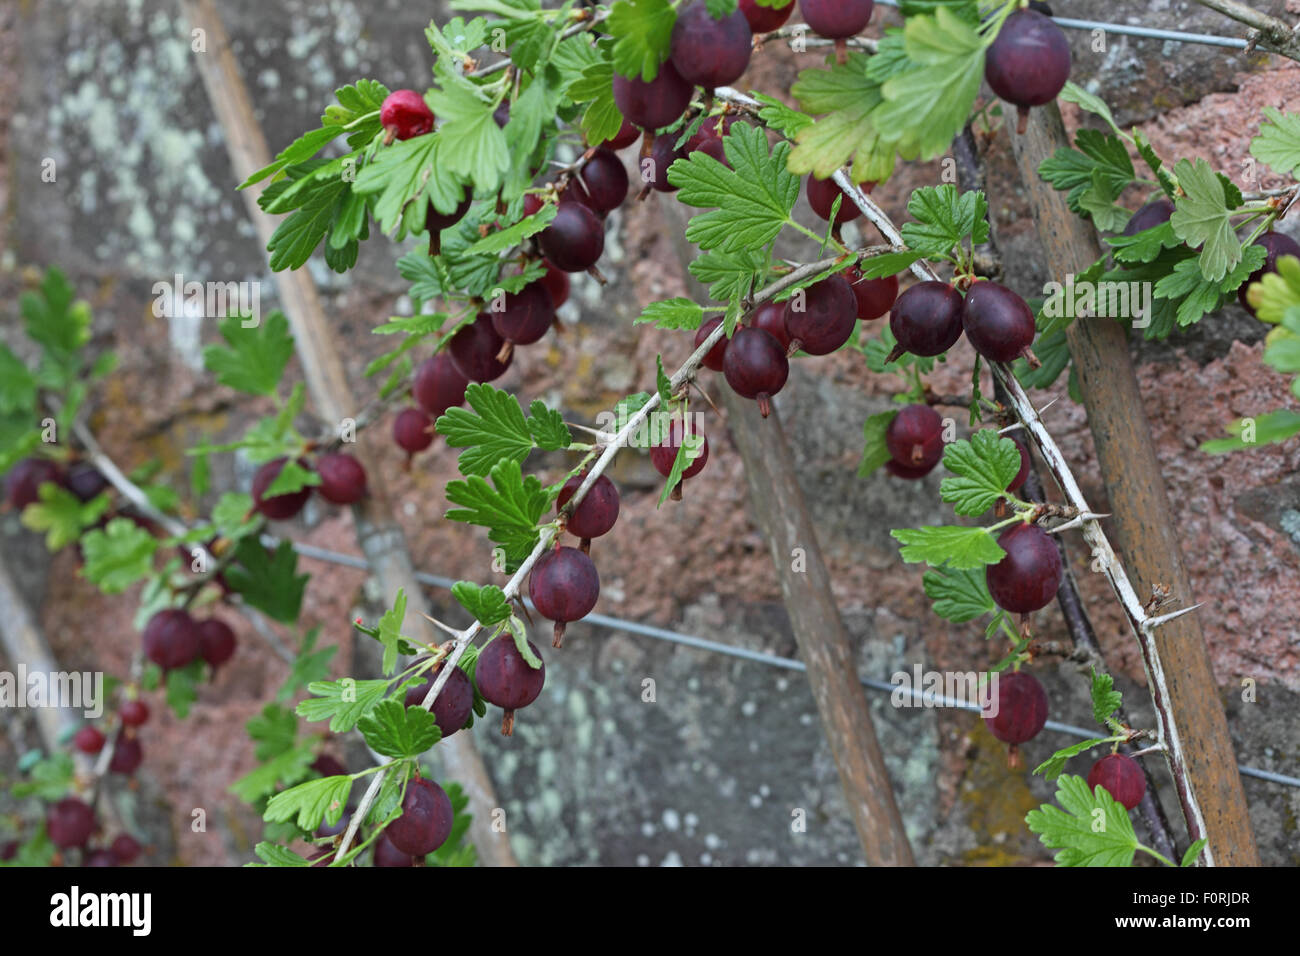 Ribes divariculatum Worcesterberry trained cordon with ripe fruit - Stock Image